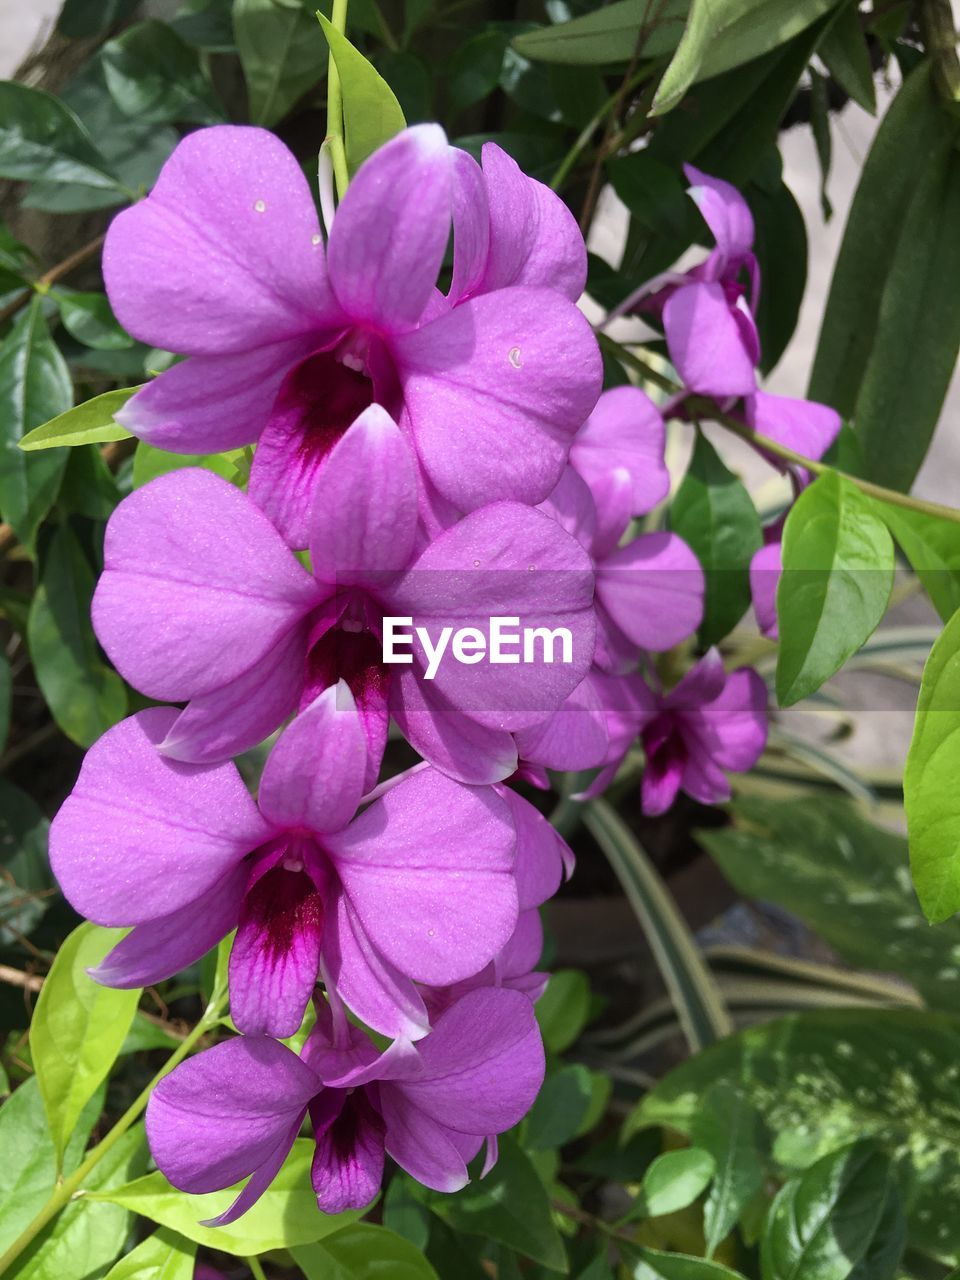 flower, petal, beauty in nature, fragility, nature, growth, pink color, no people, plant, outdoors, freshness, flower head, day, leaf, blooming, close-up, periwinkle